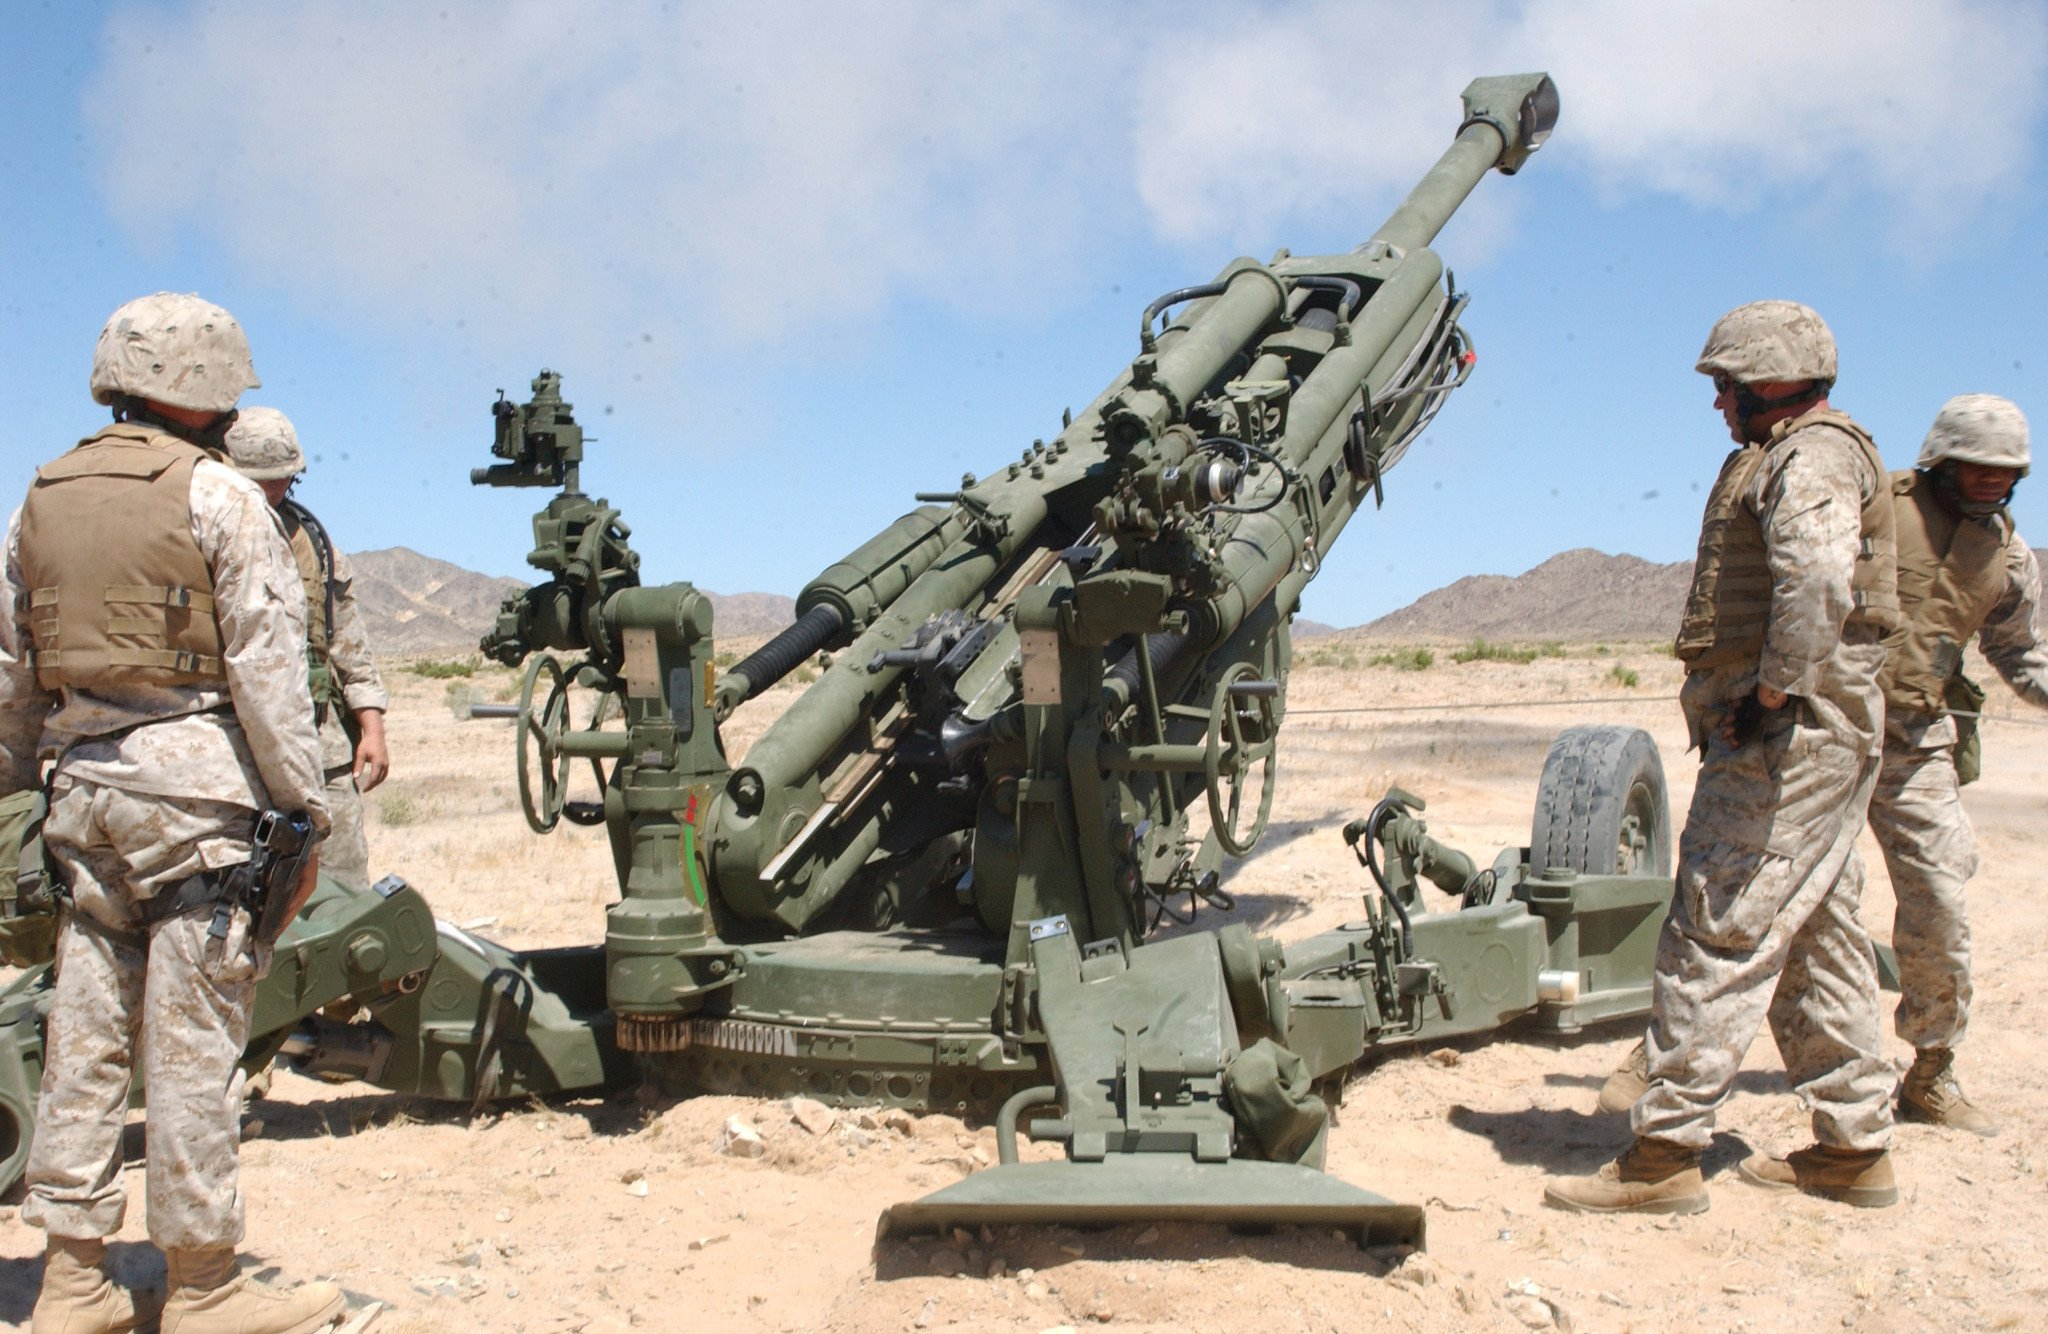 M777 howitzer - Warrior Lodge